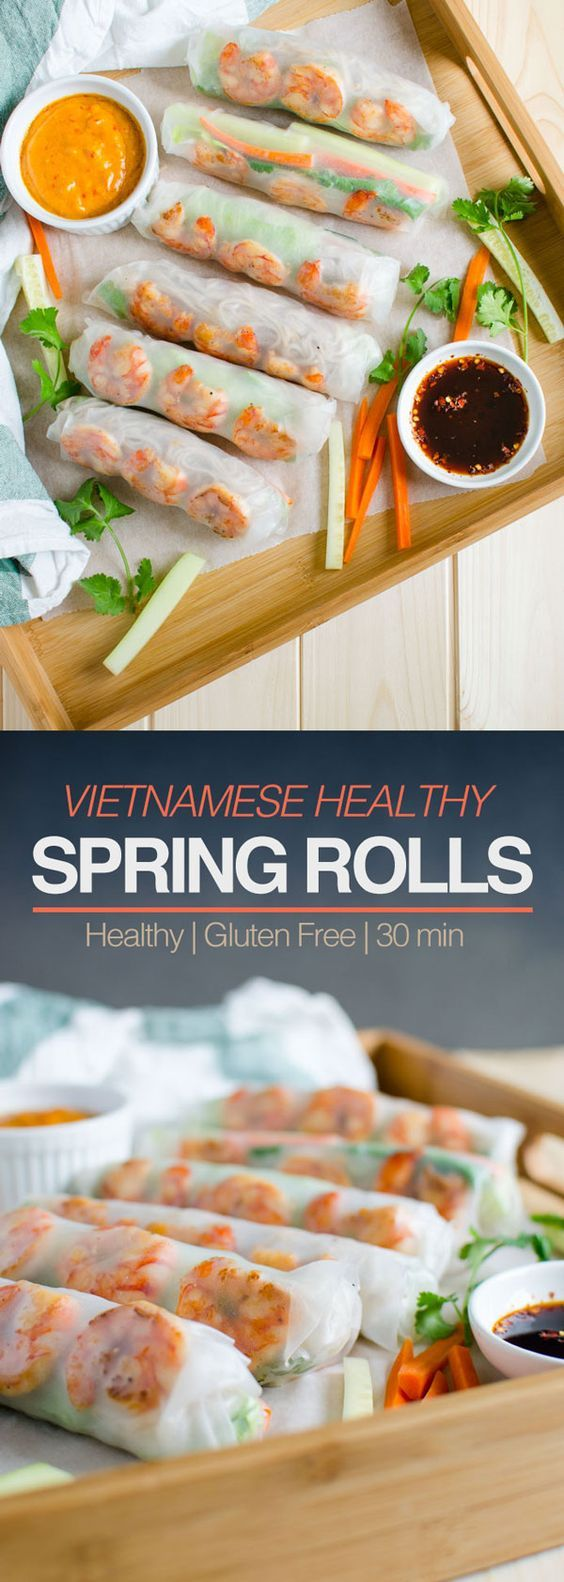 Vietnamese Healthy Spring Rolls with Peanut Butter Sauce Recipe